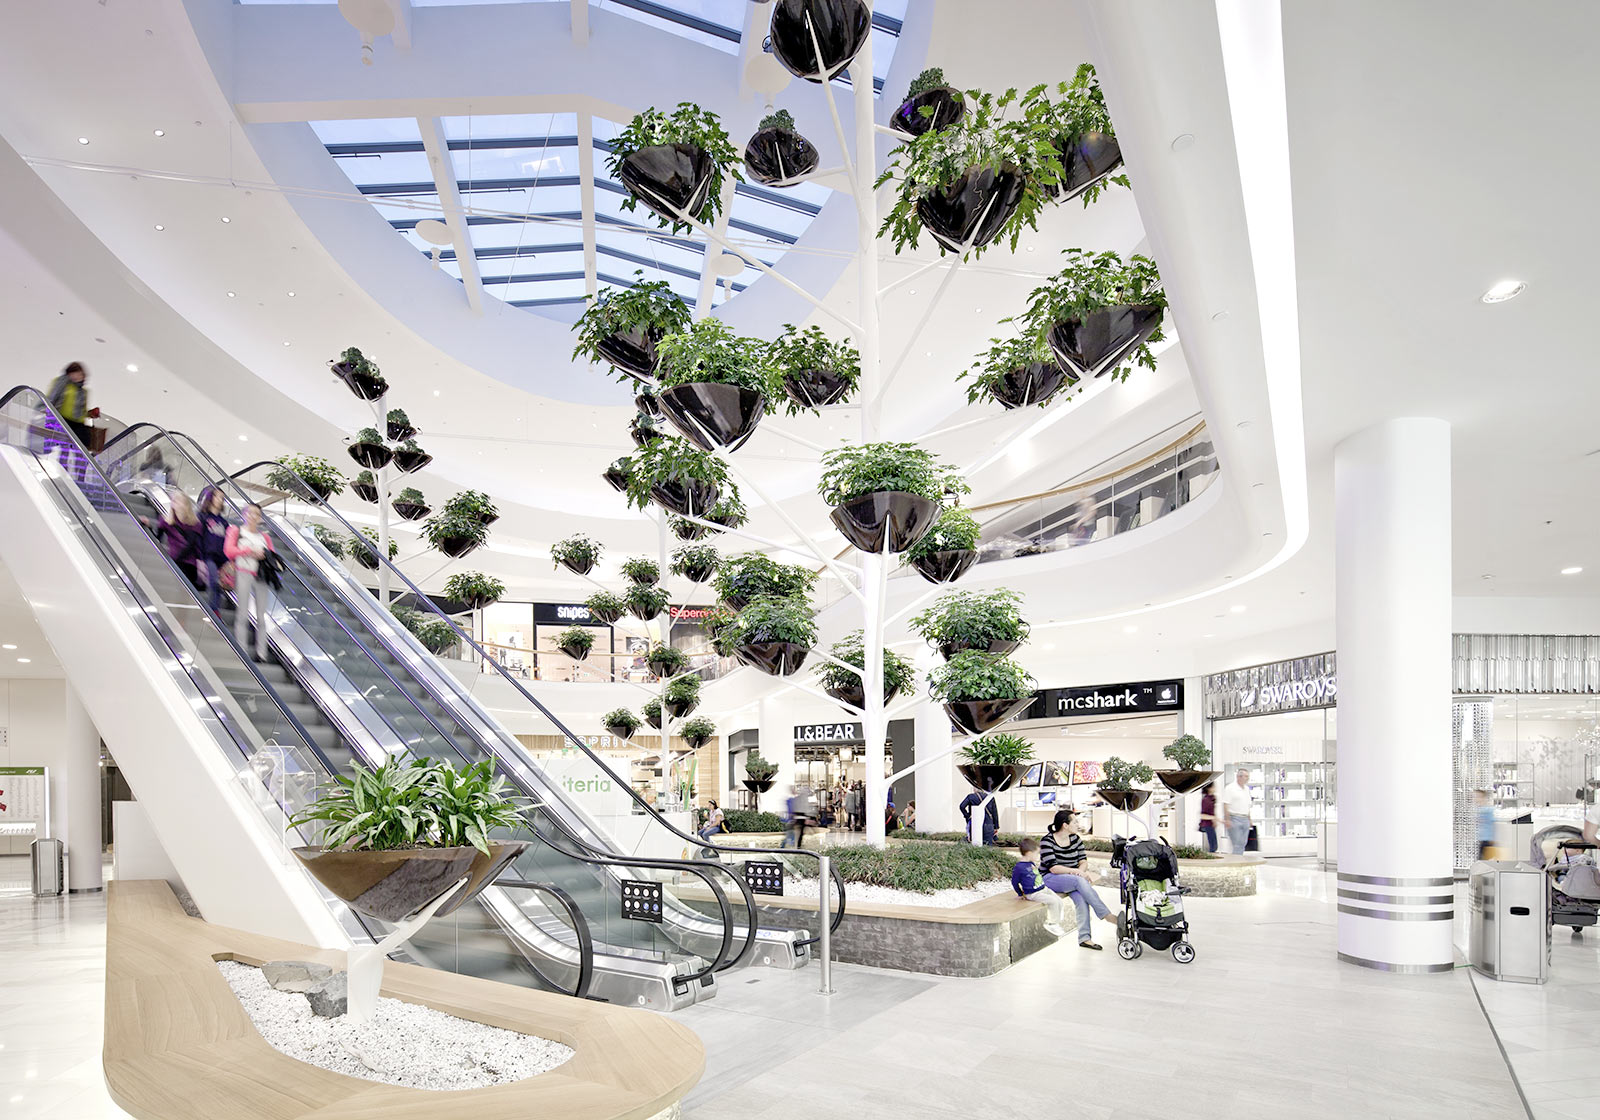 The concept is notable for its modern architecture, open spaces and greenery. Photo: ATP/Kuball